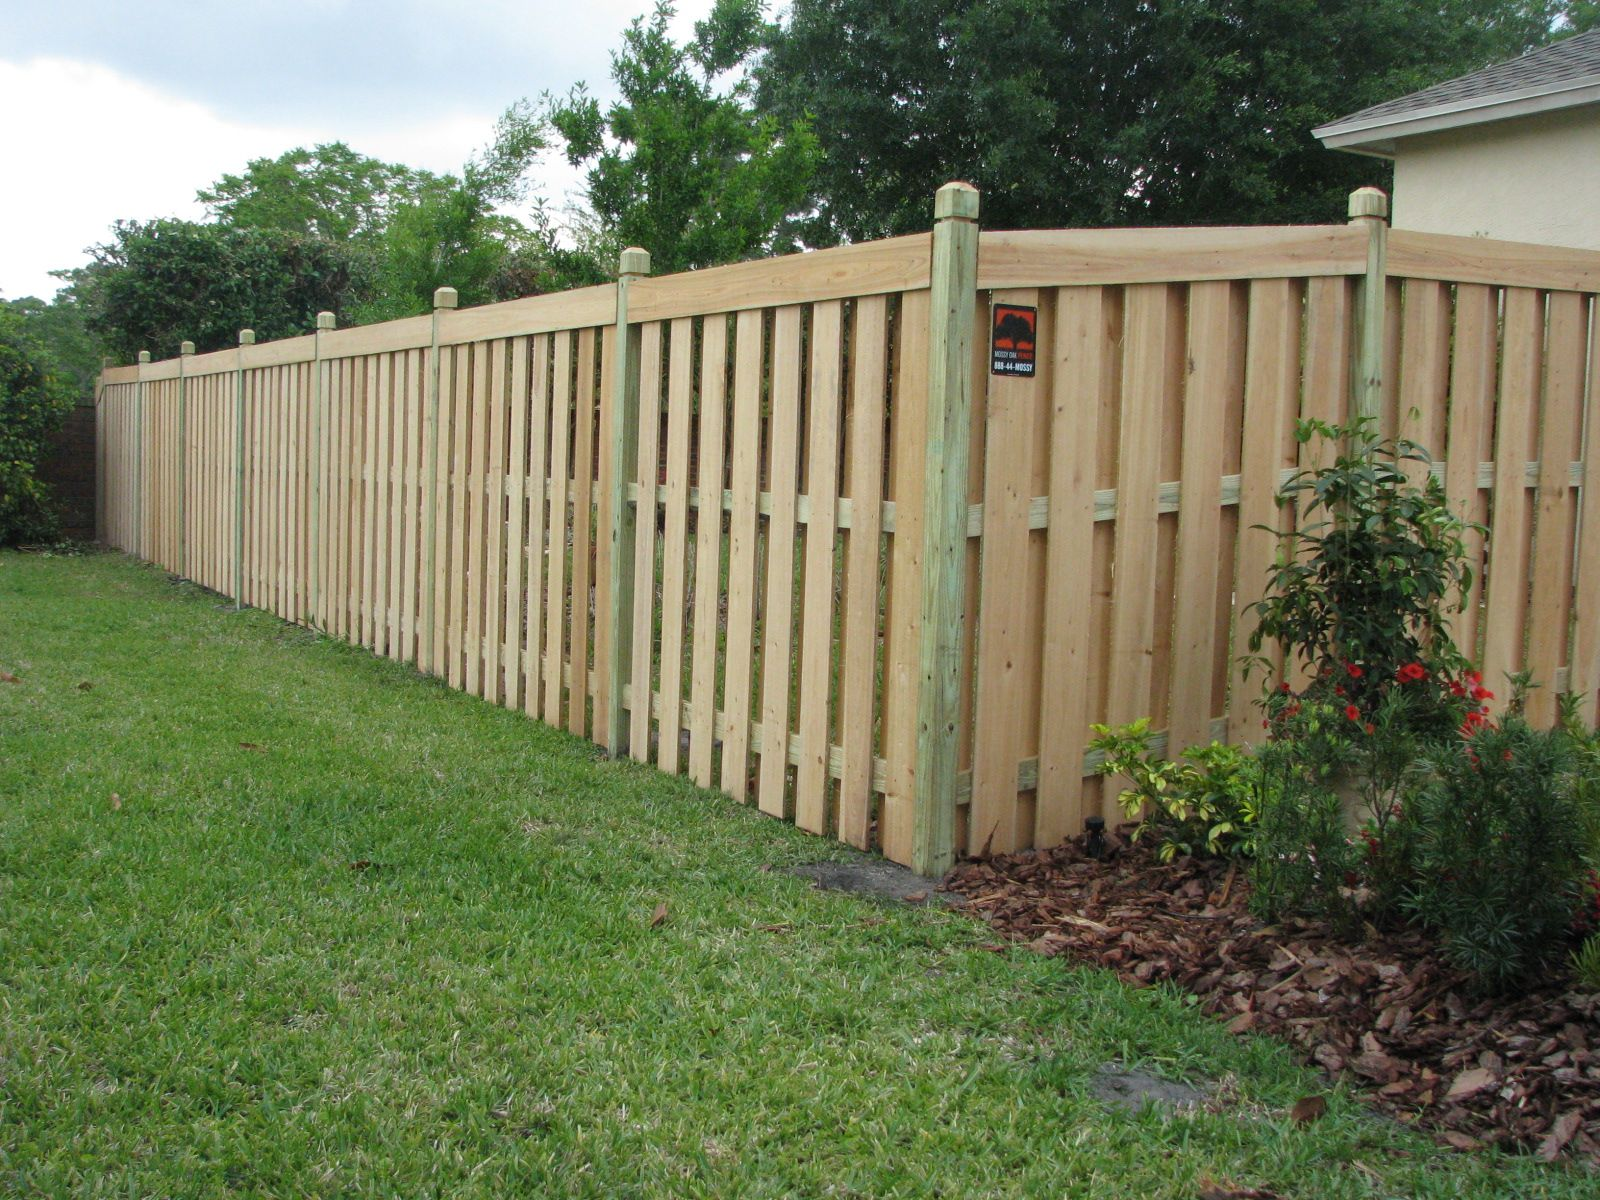 Capped Shadowbox Or Semi Privacy Wood Fence Mossy Oak Fence Company Orlando Melbourne Fl Fence Design Wood Fence Design Wood Fence